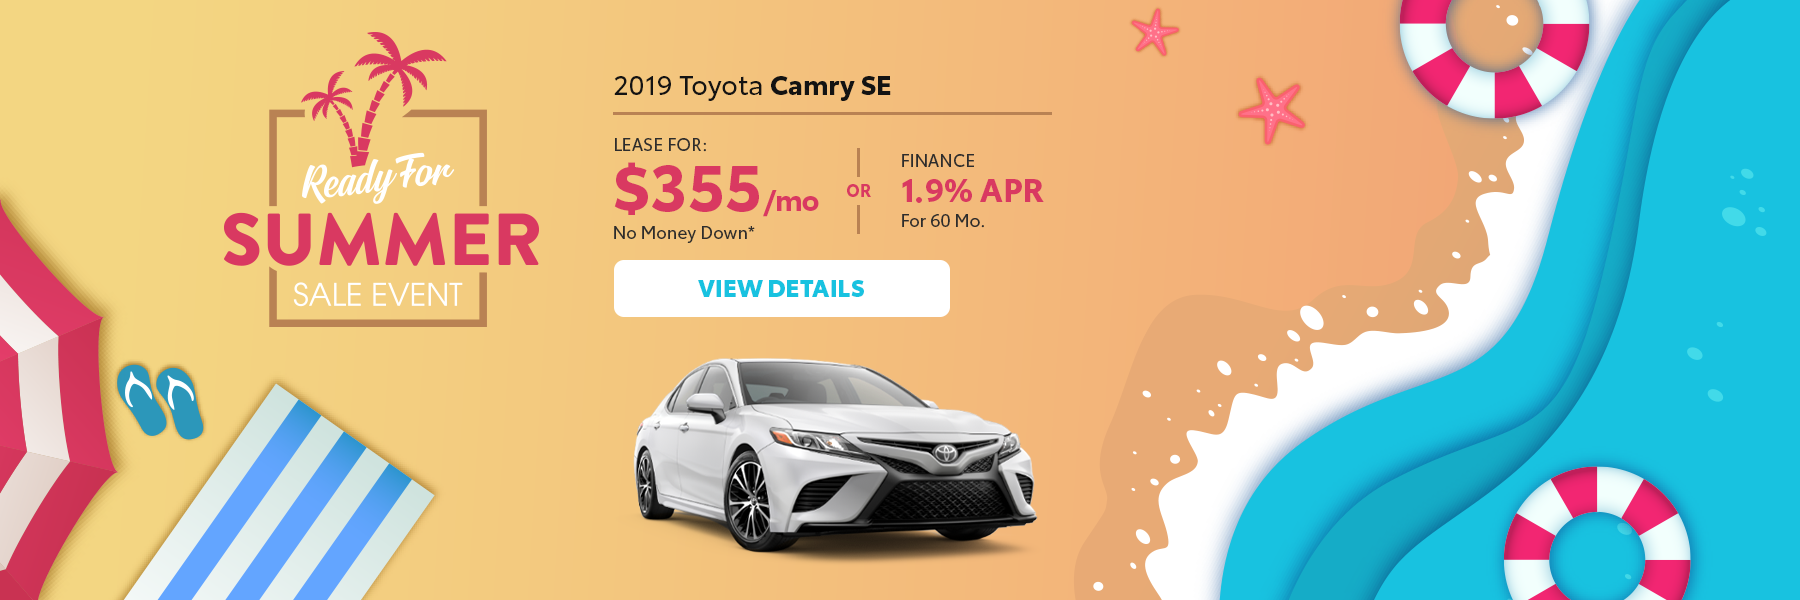 Ready For Summer Camry Offer